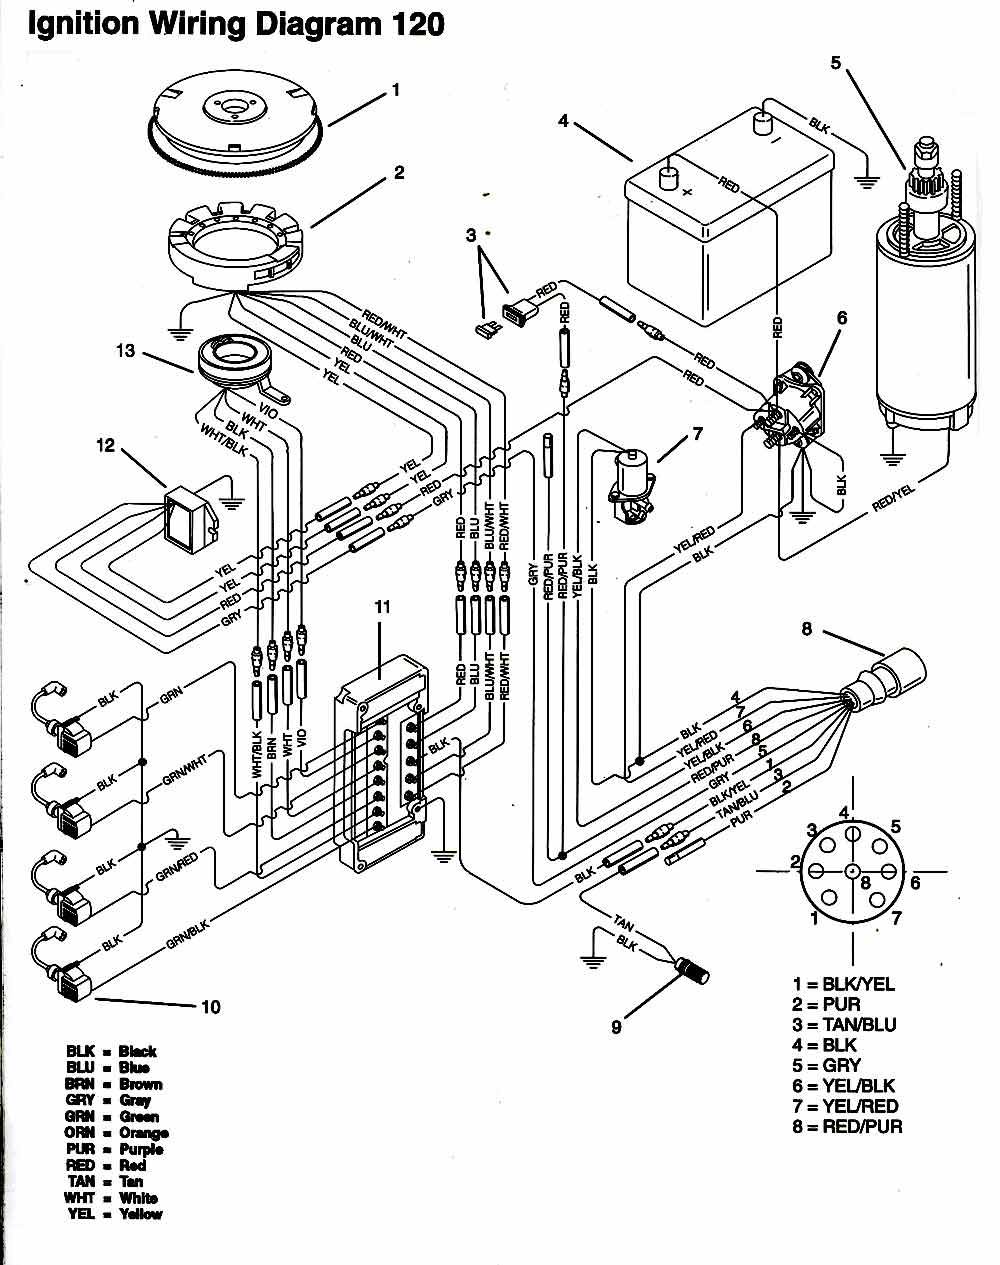 hp force outboard wiring diagram on wiring diagram 120 forcechrysler outboard wiring diagrams mastertech marine hp force outboard wiring diagram on wiring diagram 120 force outboard